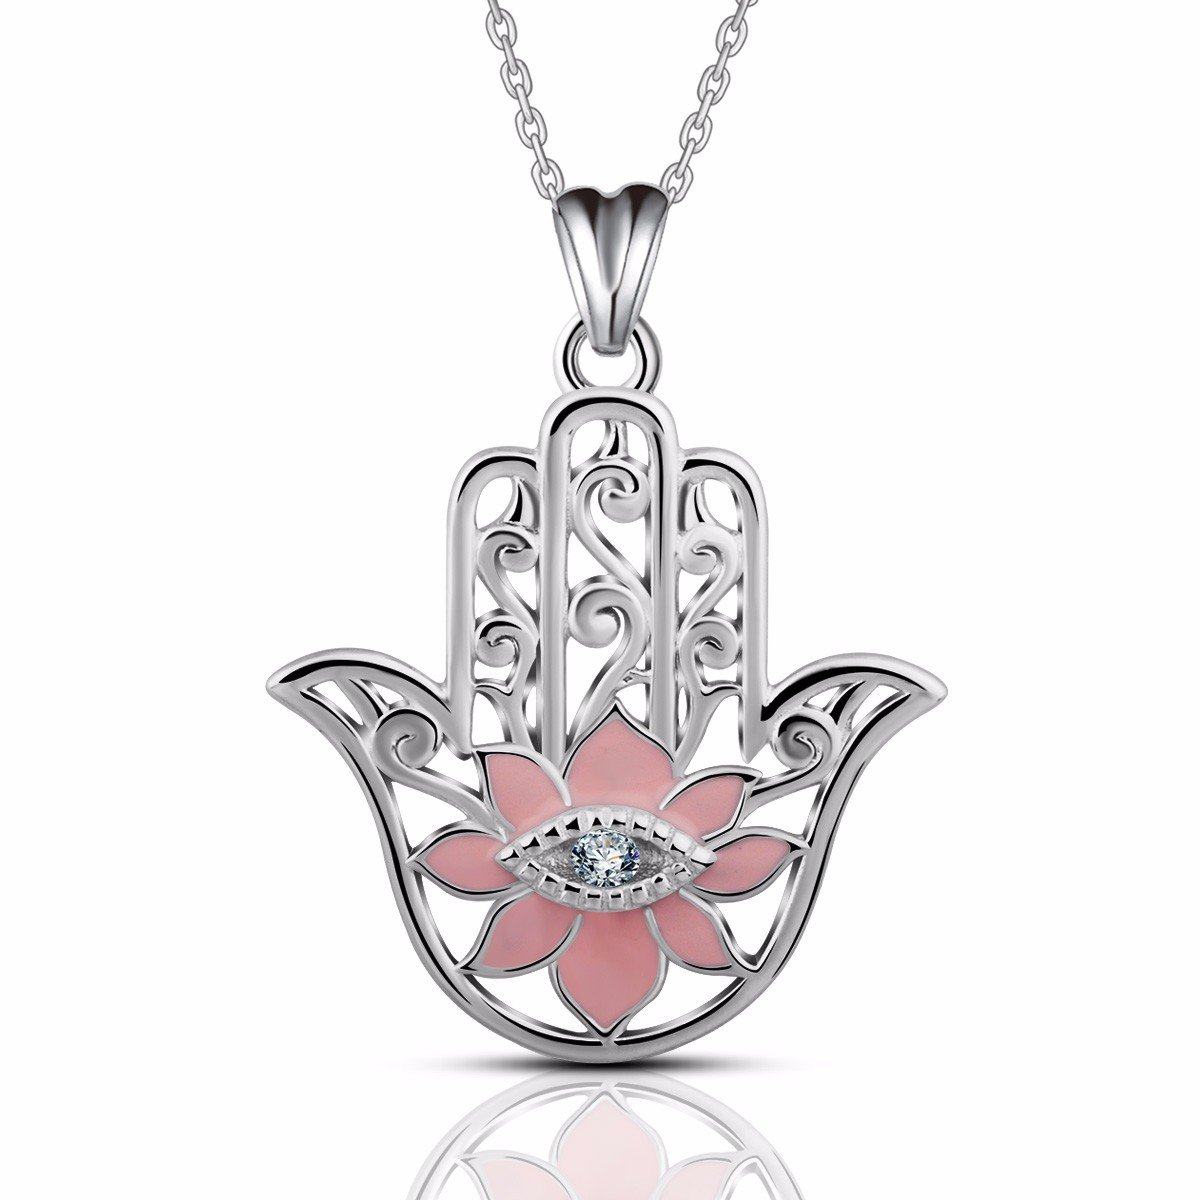 EUDORA Evil Eye Sterling Silver Hamsa Hand of Fatima Khamsa Necklace Pendants for Mother Gifts for Her 18'' Pink